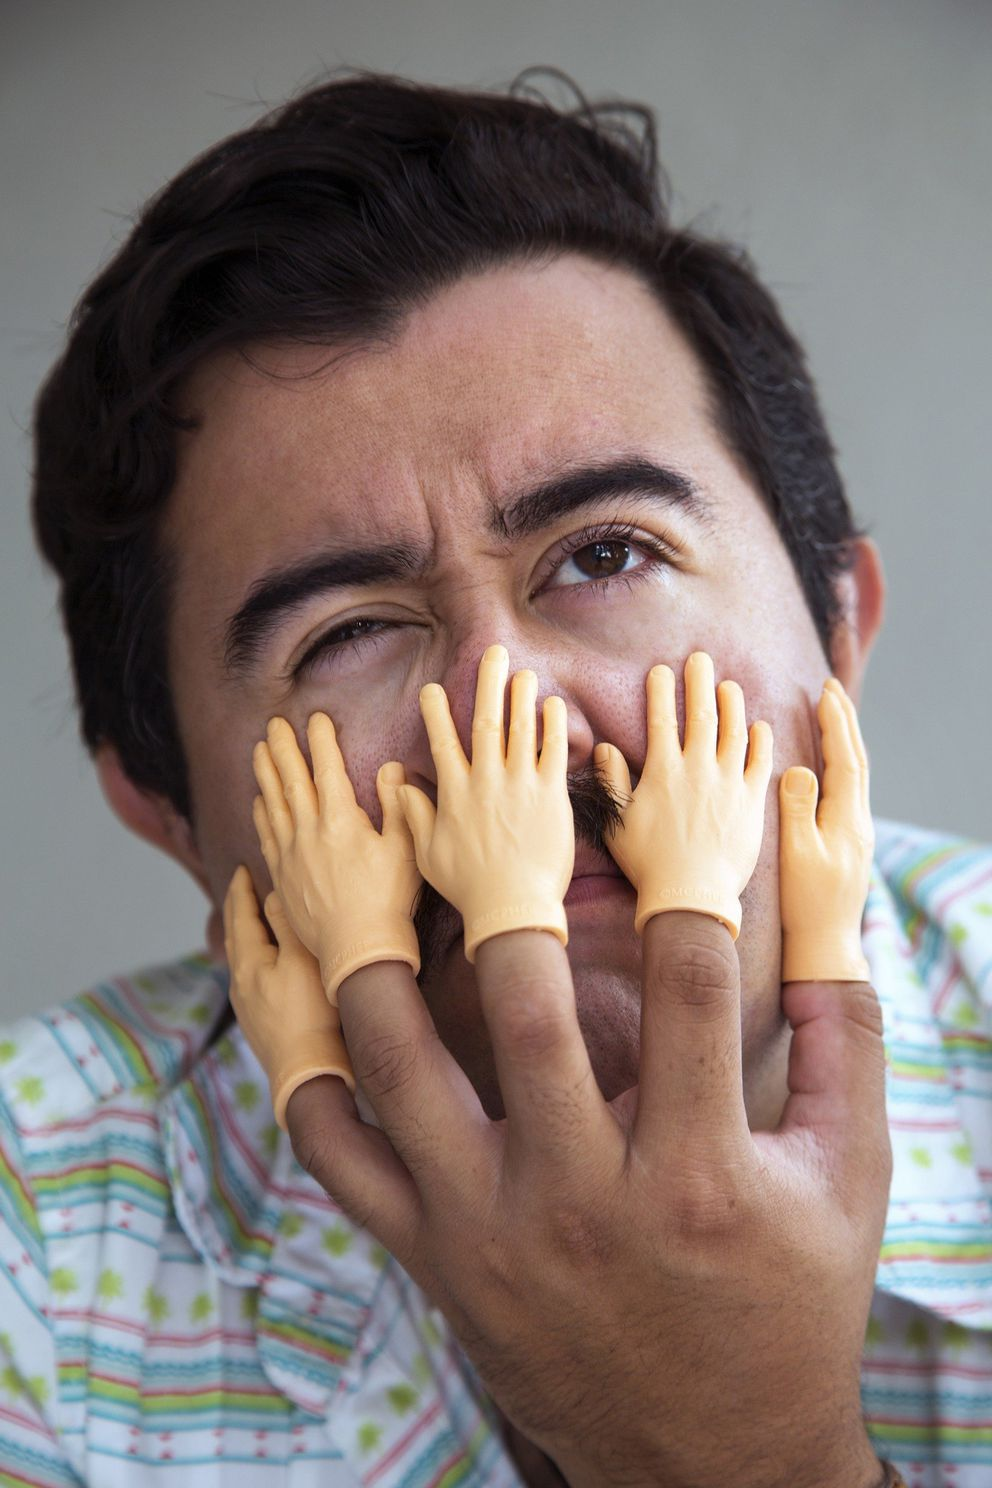 Hand Finger Puppets. Actor is Joey Flechas is photographed at Carl Juste's home. (CARL JUSTE/MIAMI HERALD/TNS)